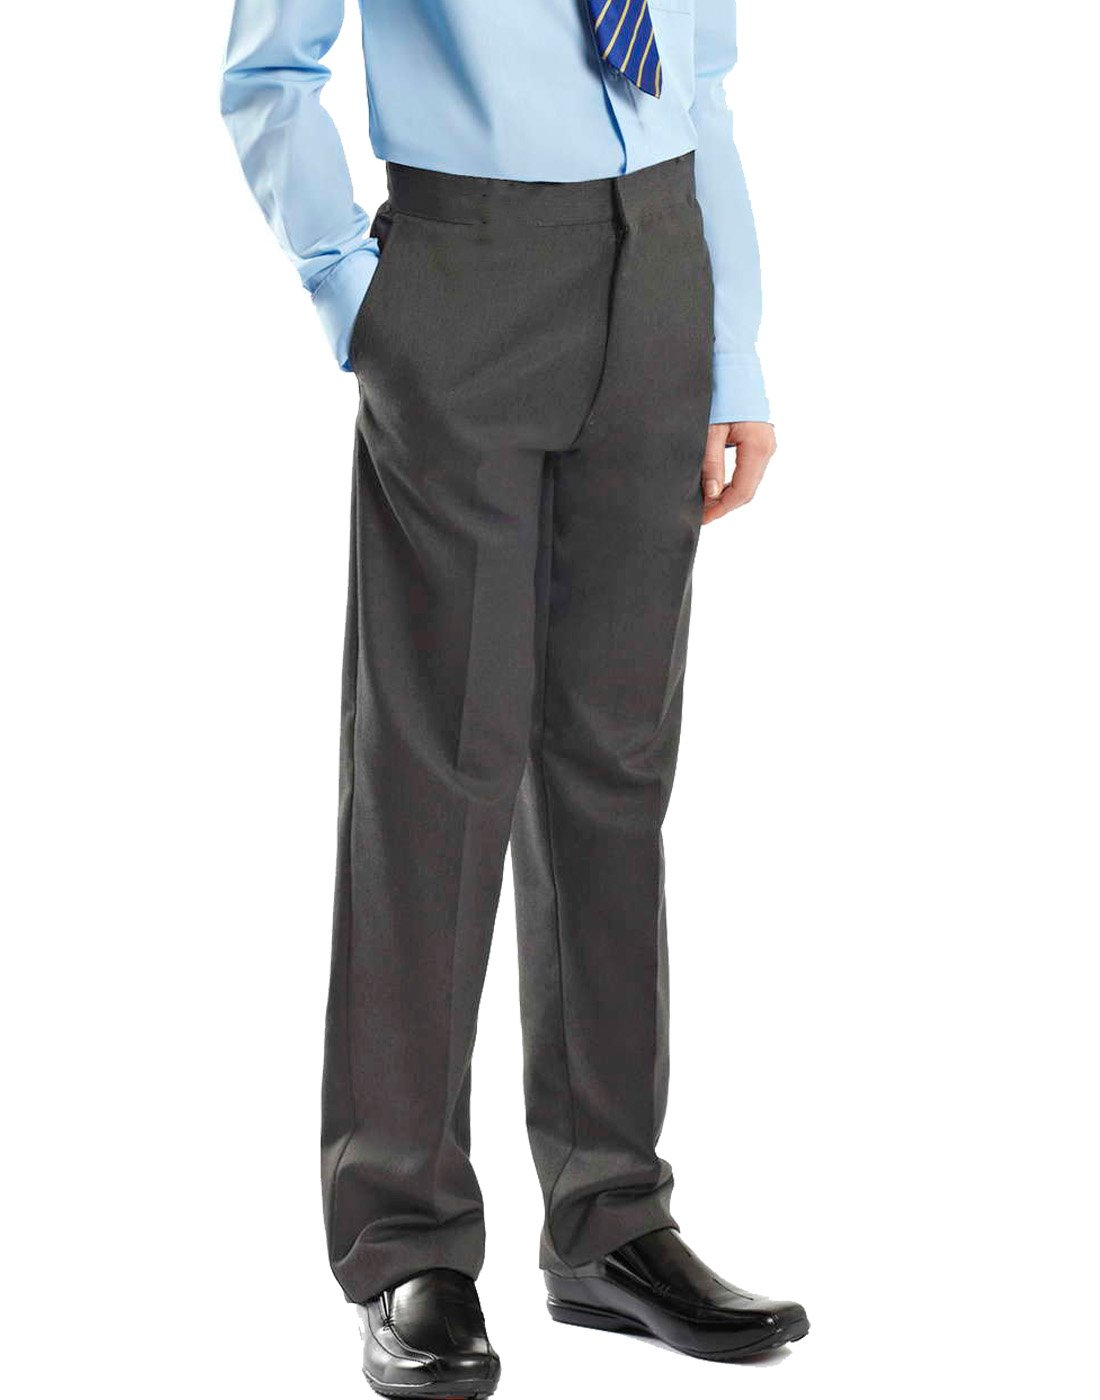 Boys School Trousers Pull Up Elasticated Waist Black Grey Uniform Trousers